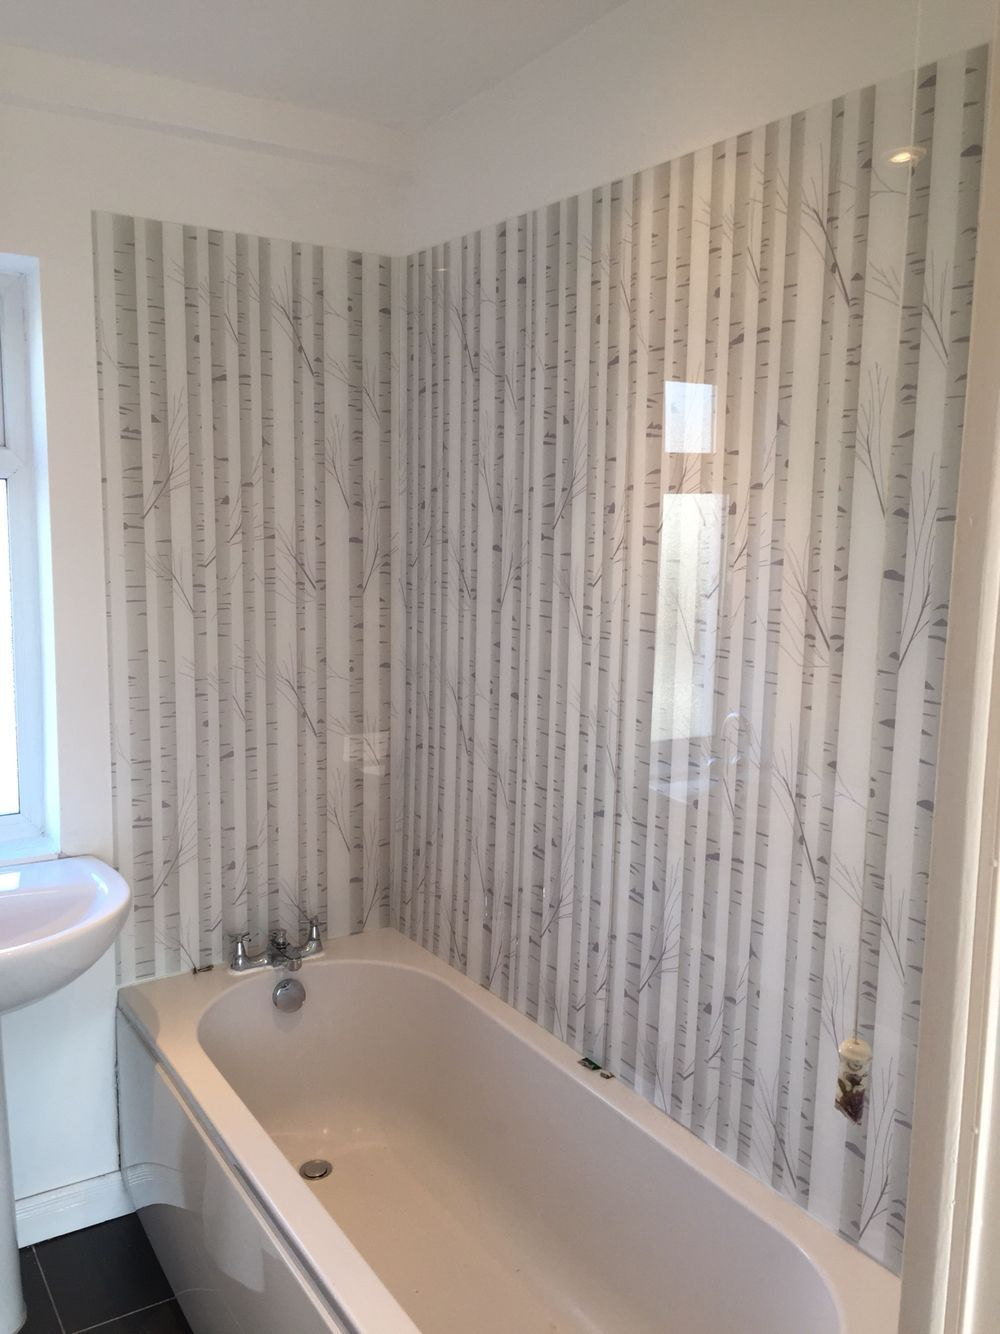 Acrylic shower & bath panels in \'woodland silhouette\' design by ...